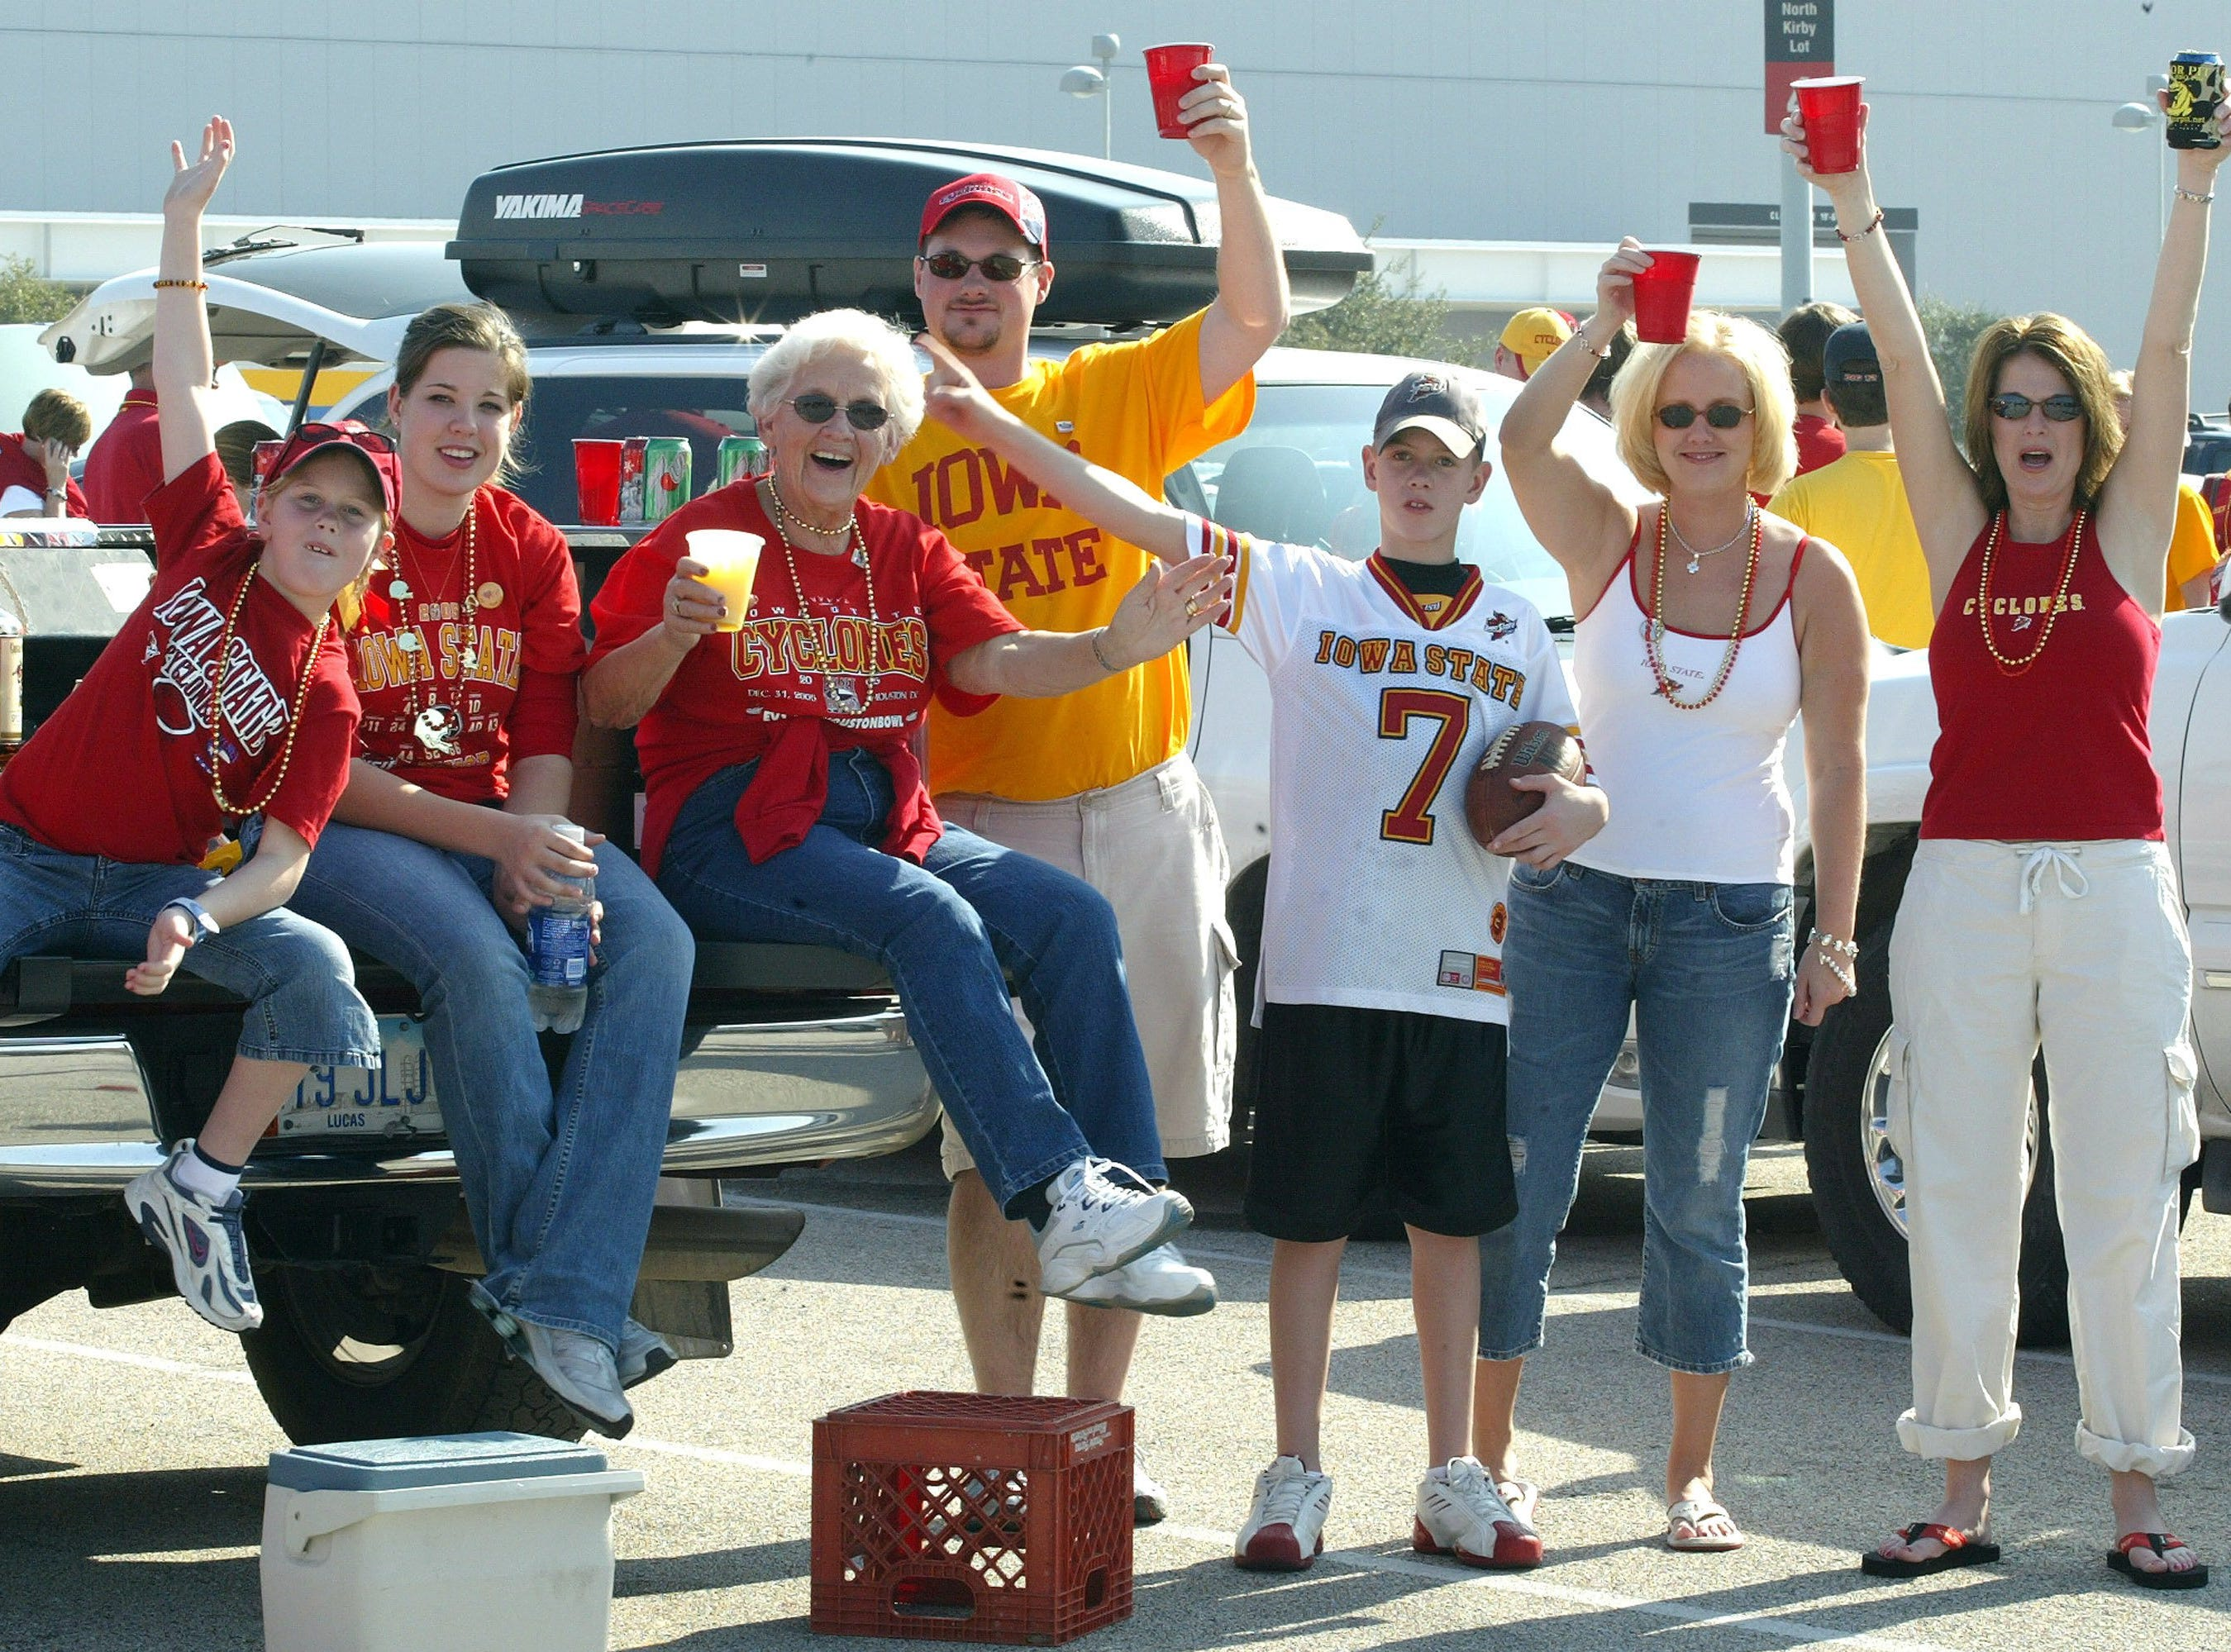 The Burgett clan tailgates in the parking lot before the 2005 Houston Bowl. Age ranges from Grandpa Gene, 75, (not shown) to Josie, 8, far left. They are from Pleasantville, Chariton and Altoona.